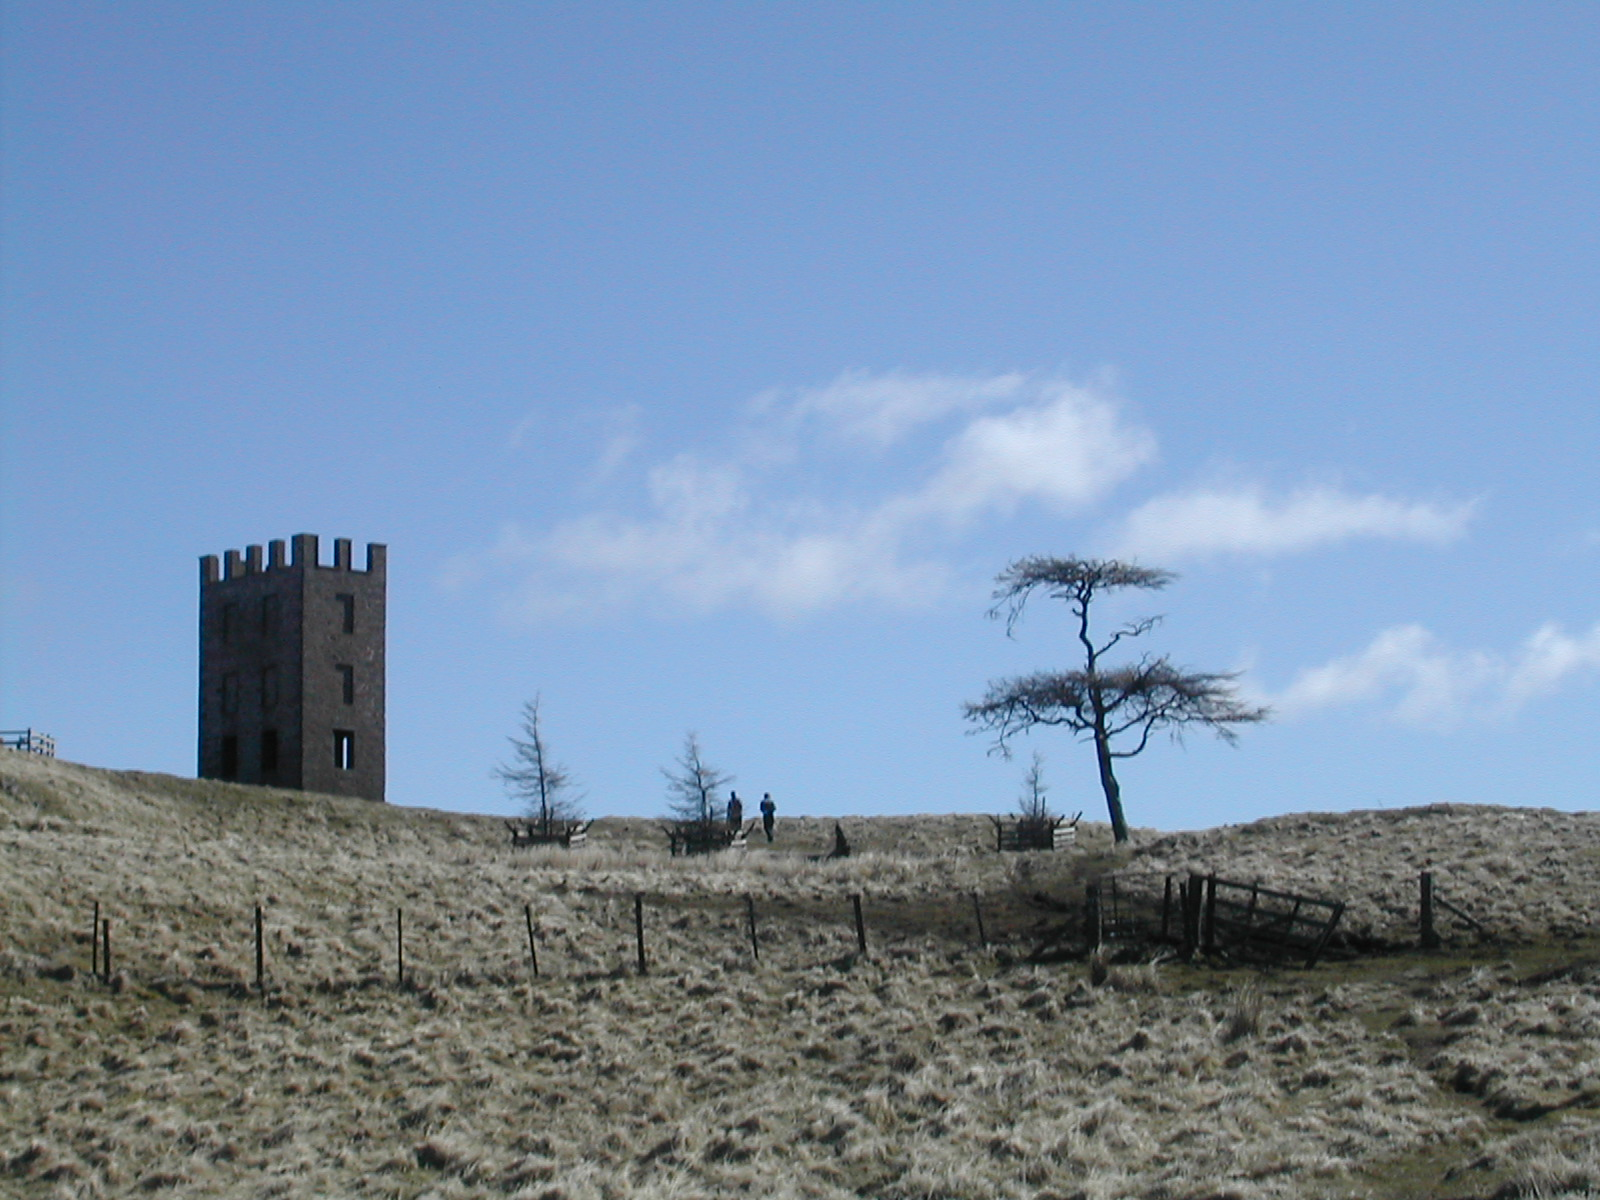 Kinpurnie tower and trees